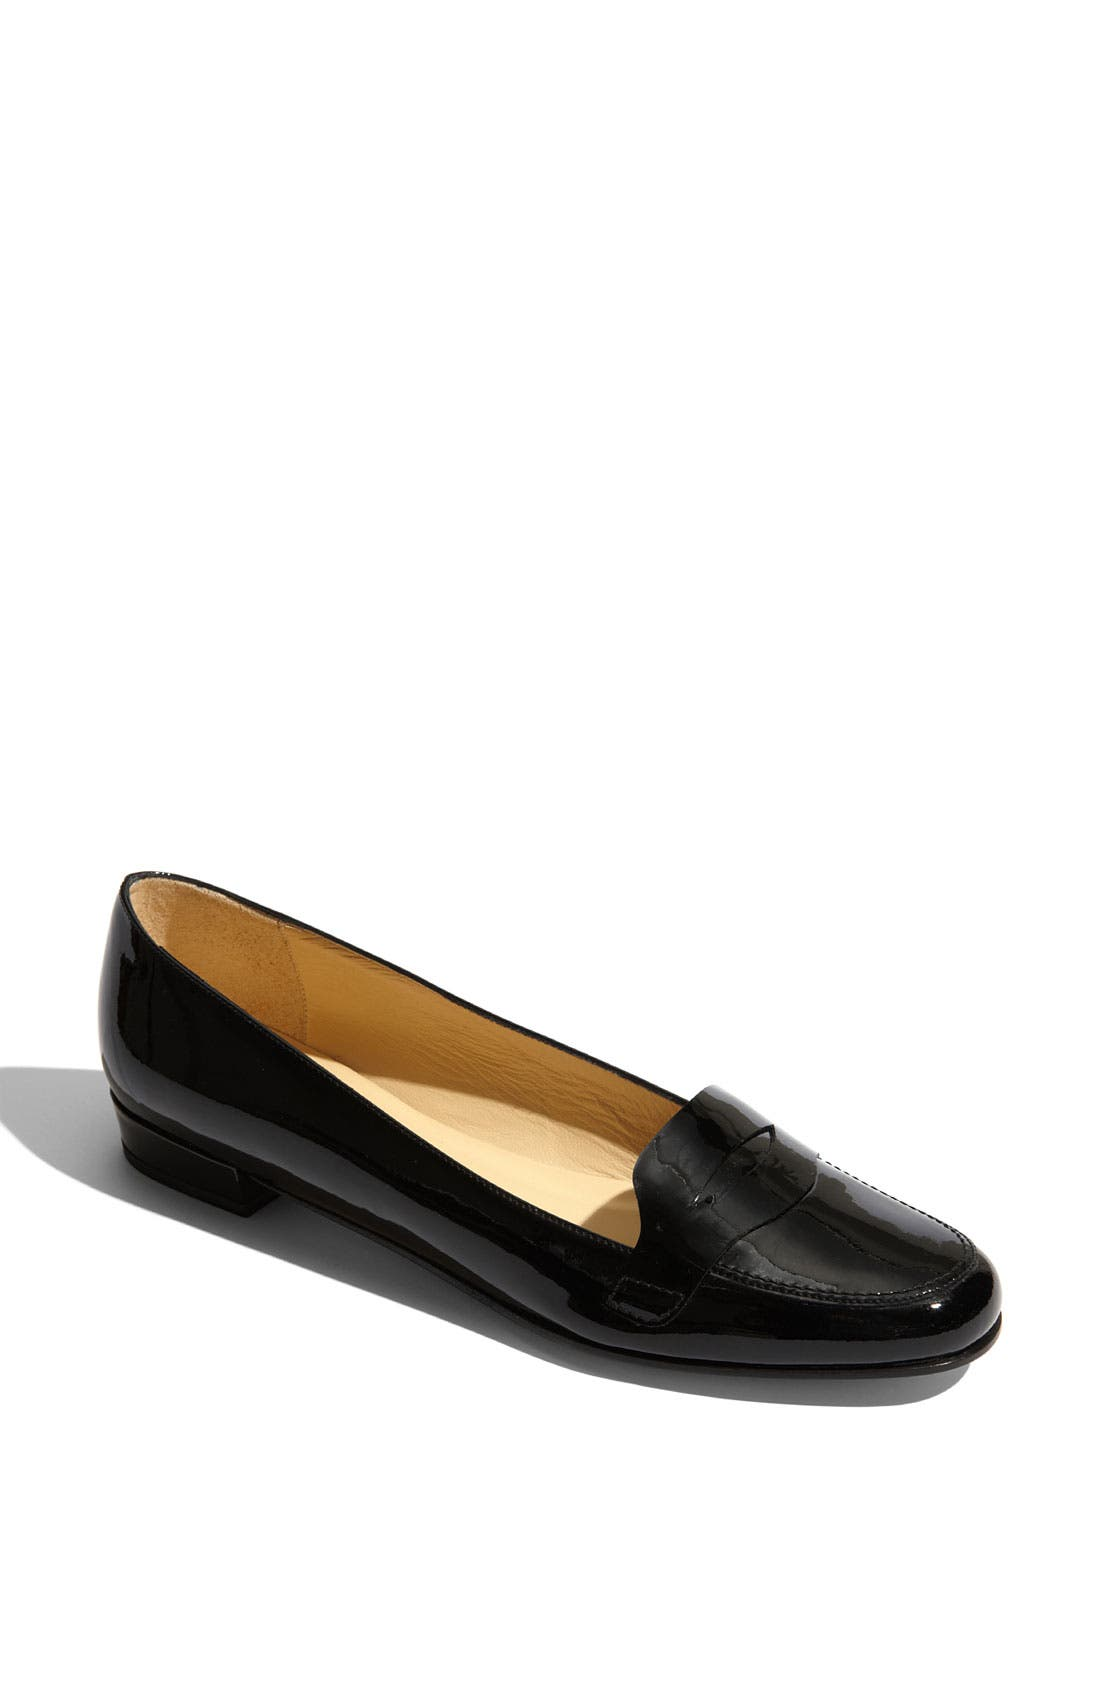 Main Image - kate spade new york 'olympia' loafer